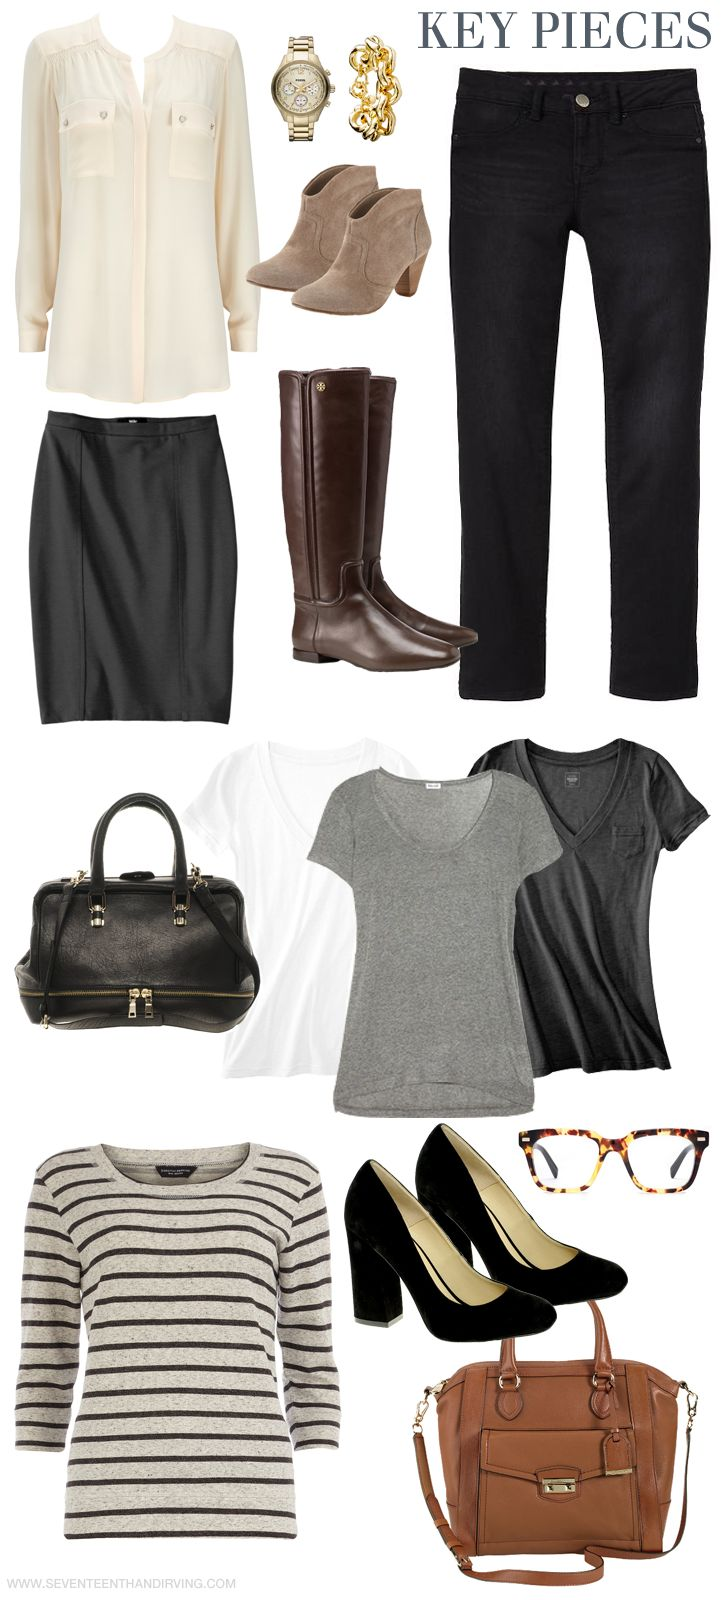 Key wardrobe pieces from the blog Seventeenth and Irving (part of a great blog series on pruning and replenishing your wardrobe)